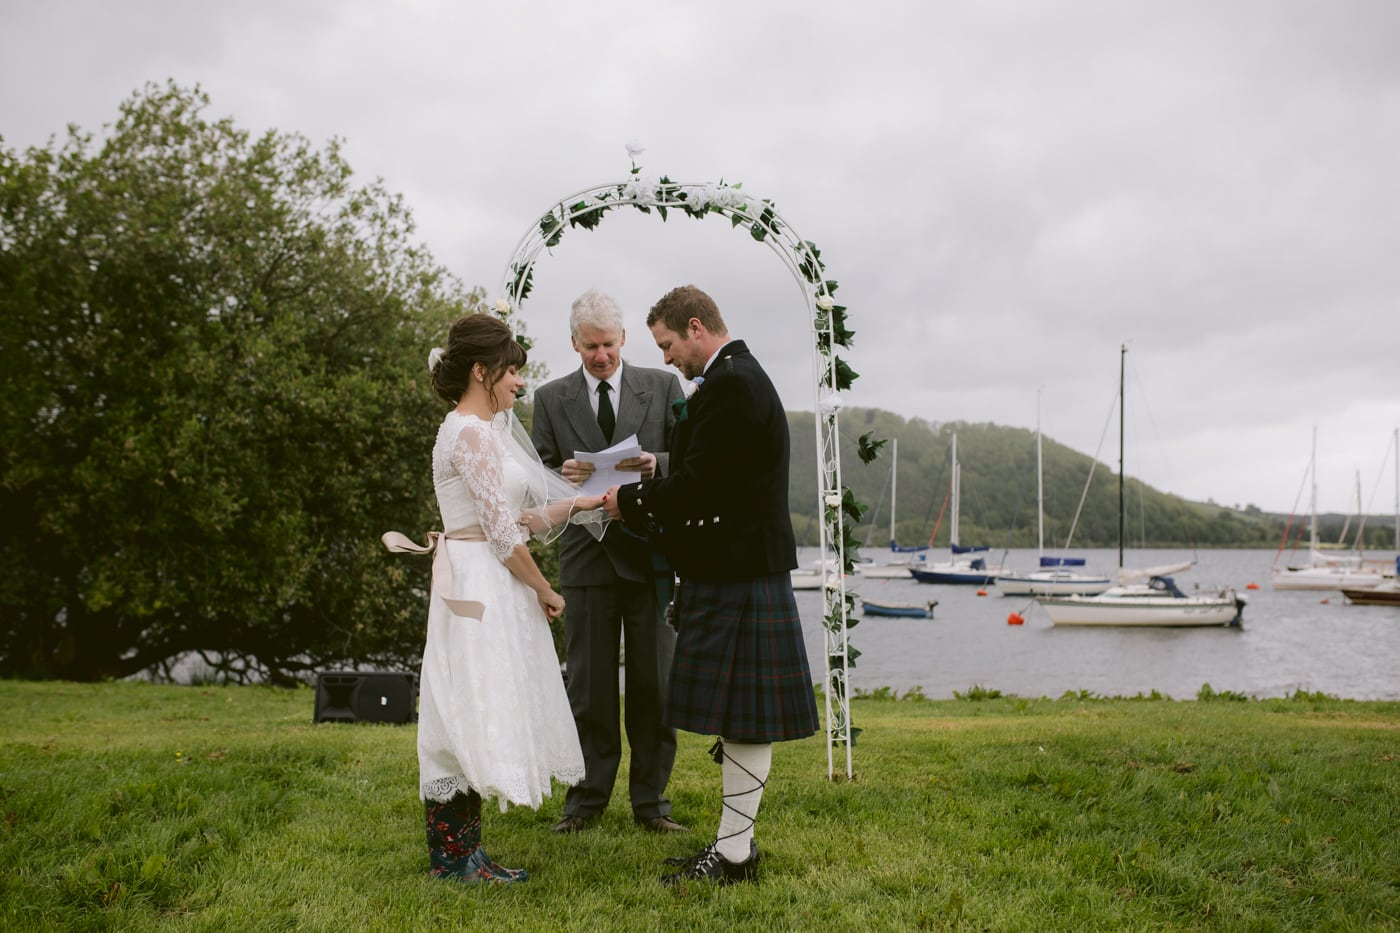 Charlotte and Jack Tieing the Knot at Tipi Wedding On The Shores Of Ullswater